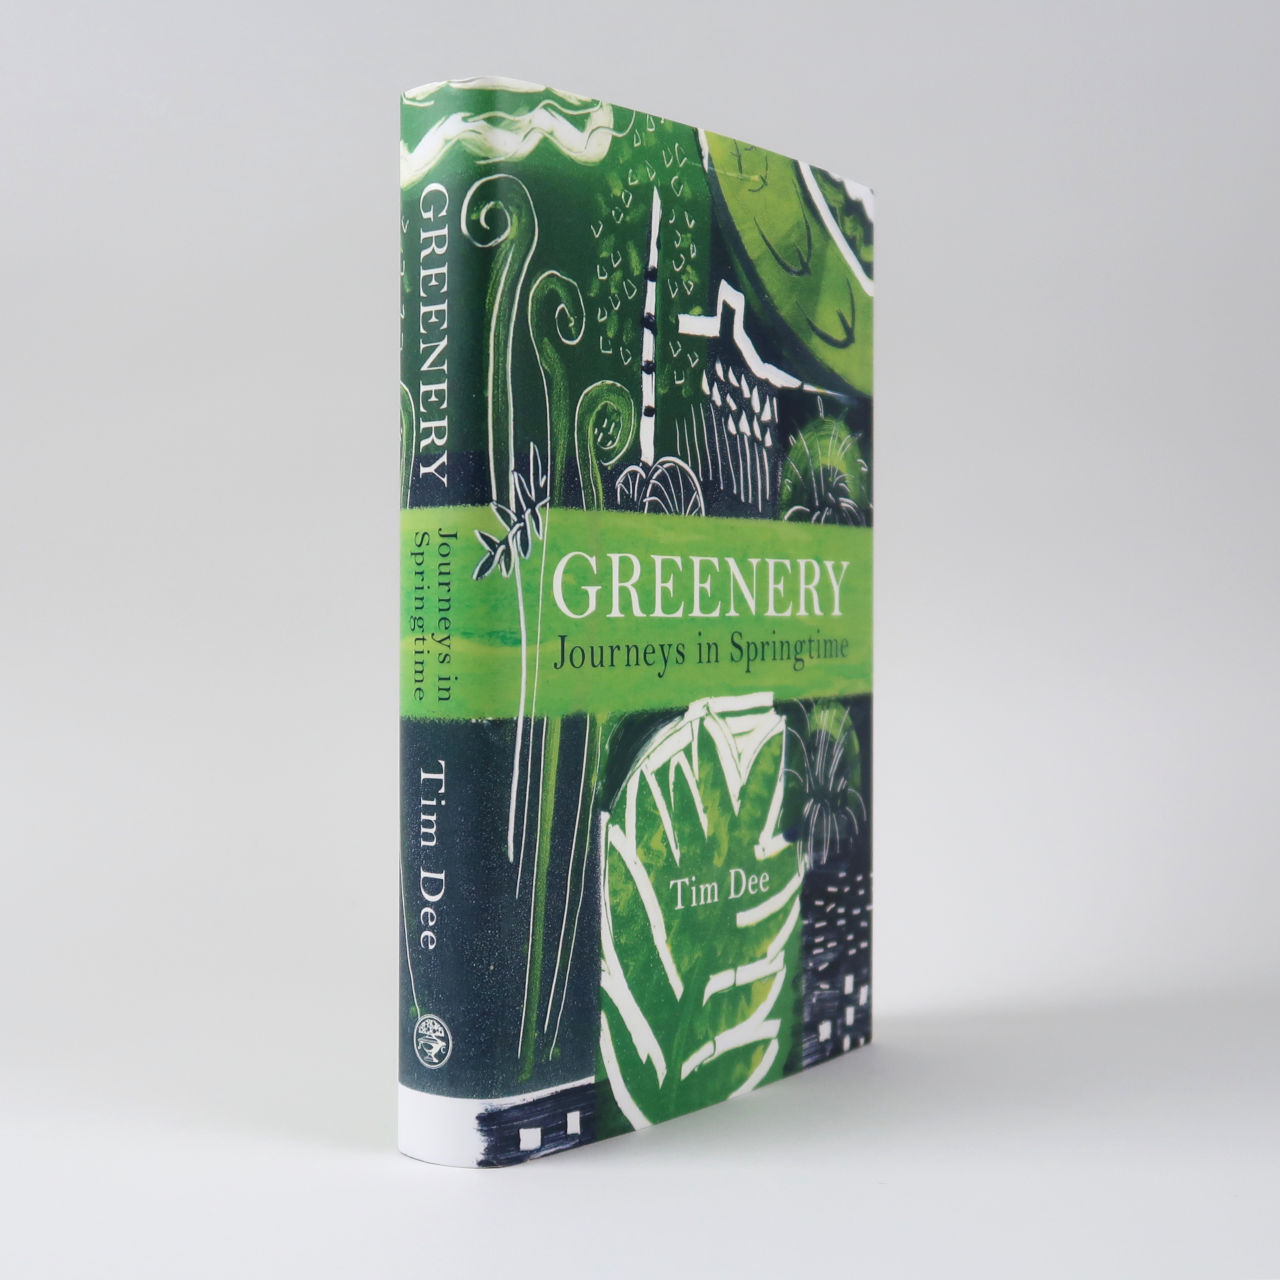 Greenery: Journeys in Springtime - Tim Dee